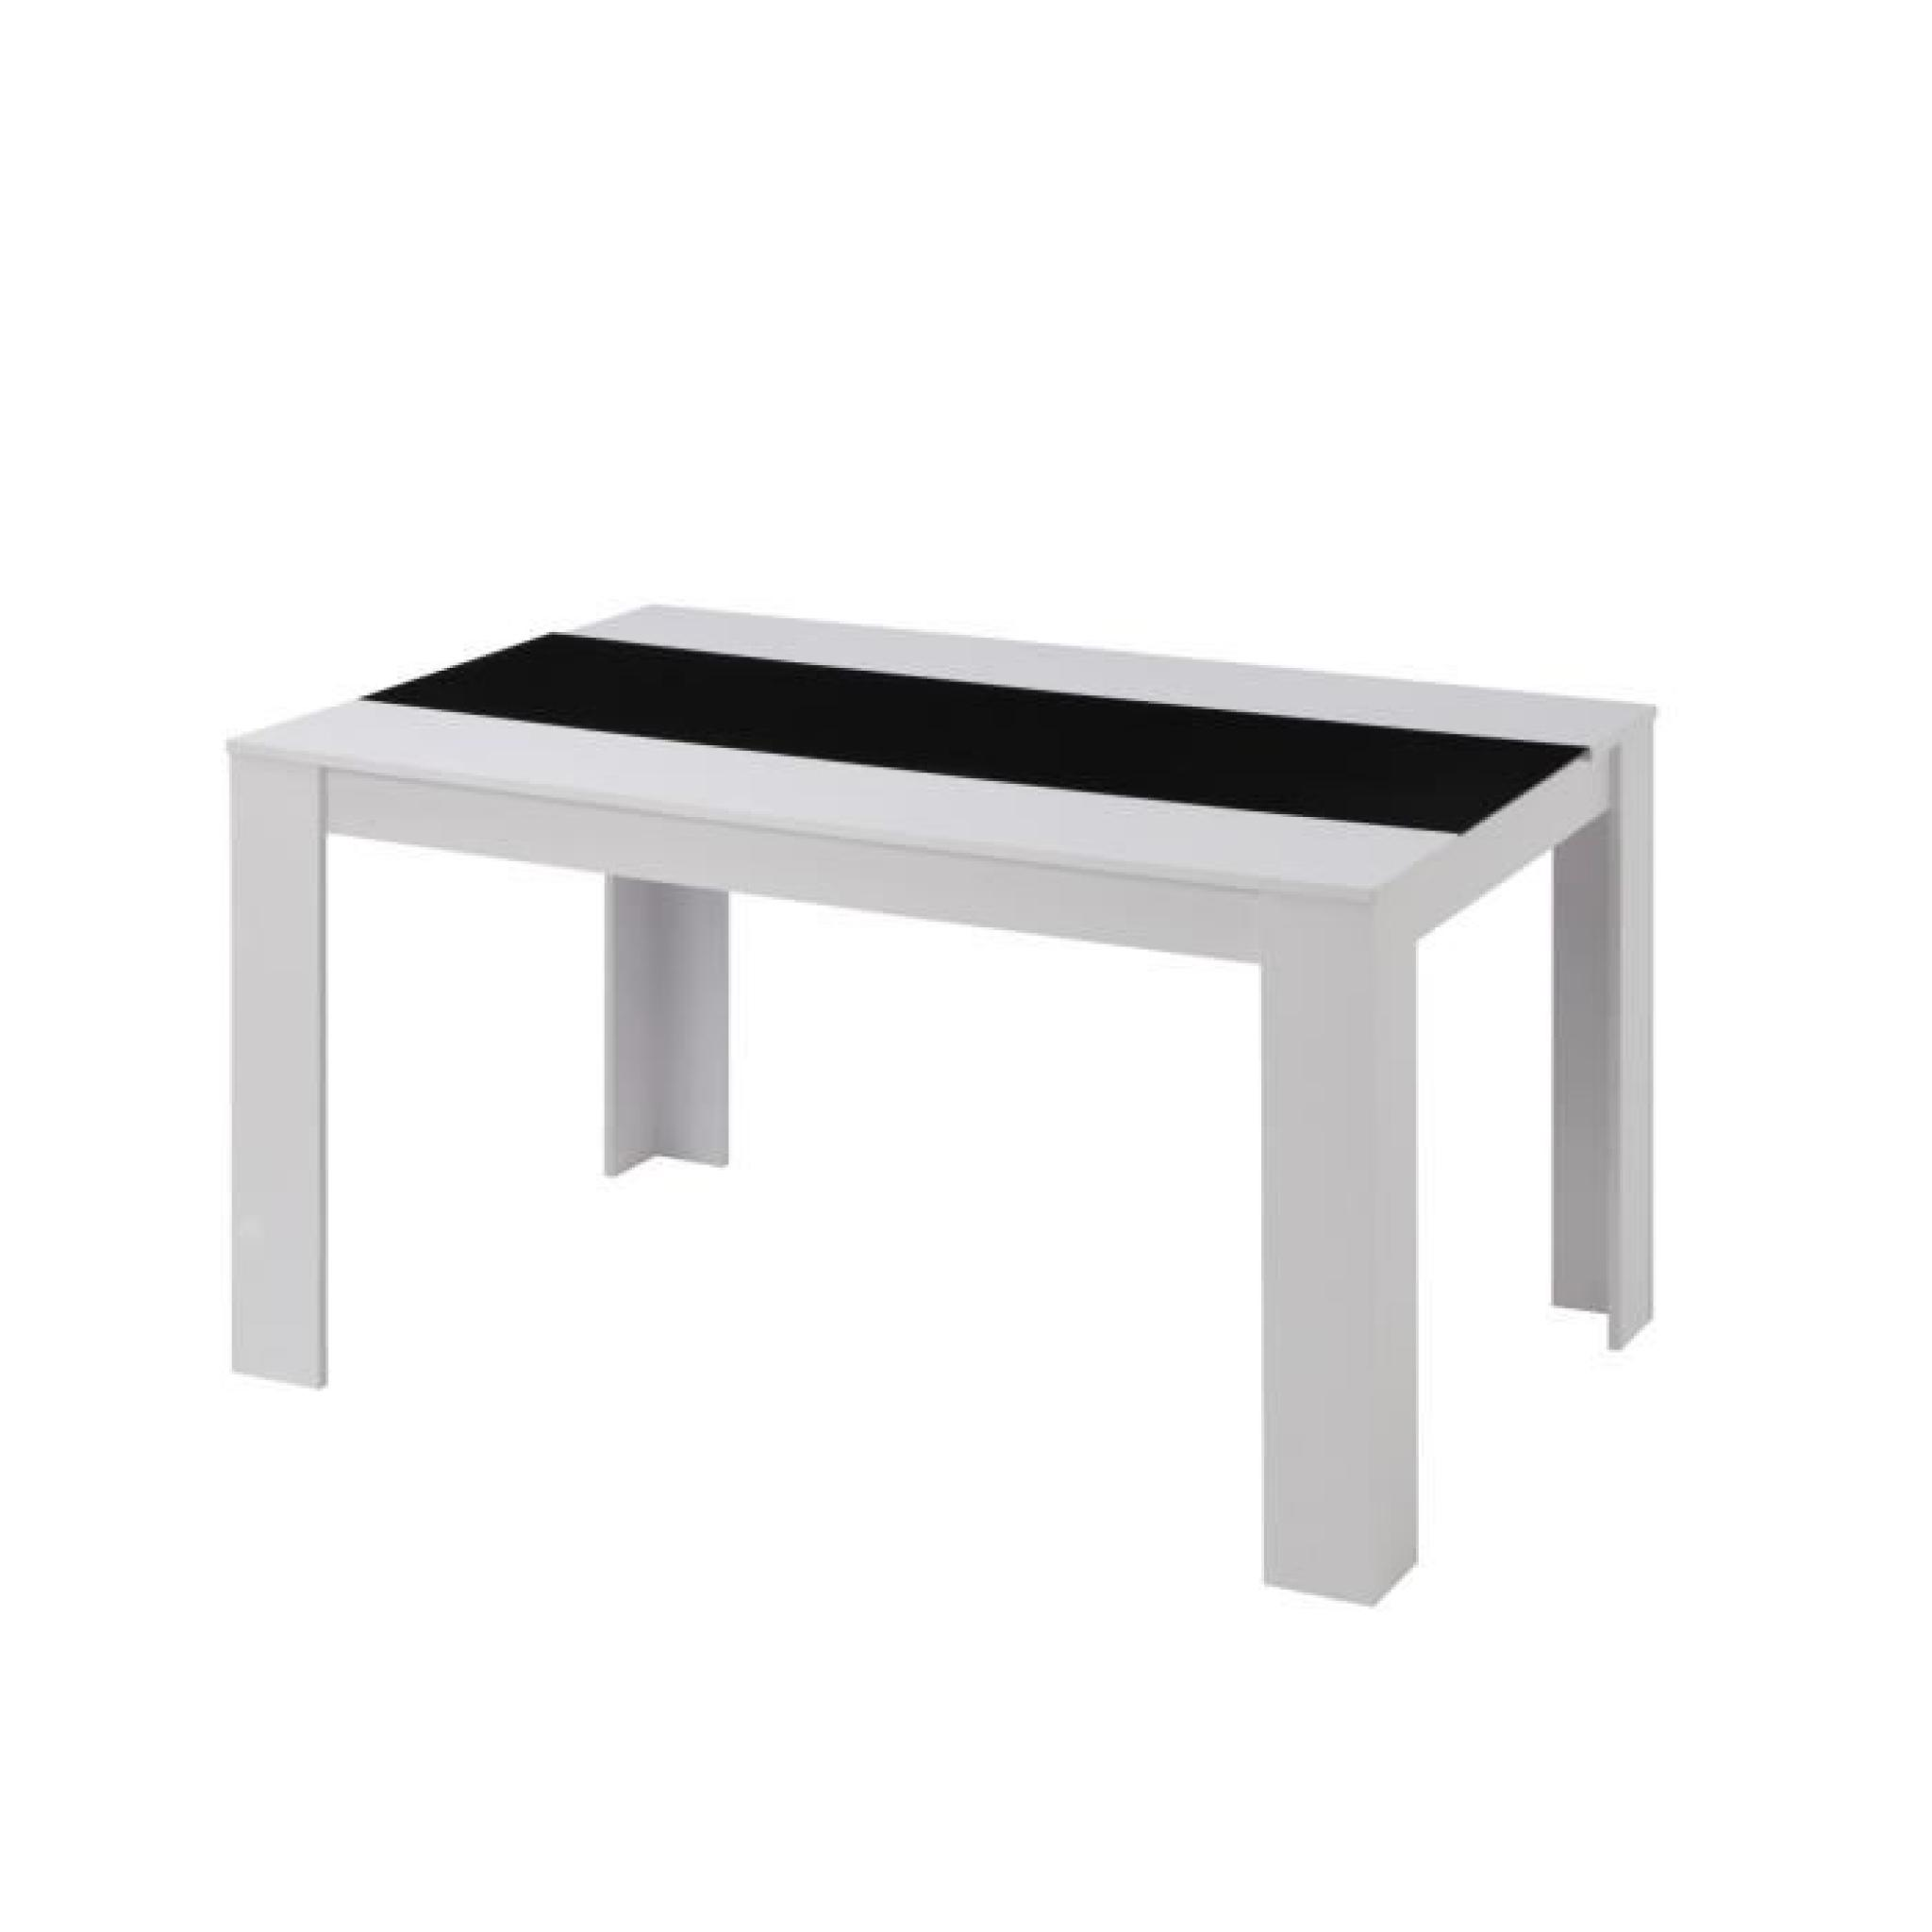 Damia table manger 140x90cm noir et blanc achat vente for Photo table a manger